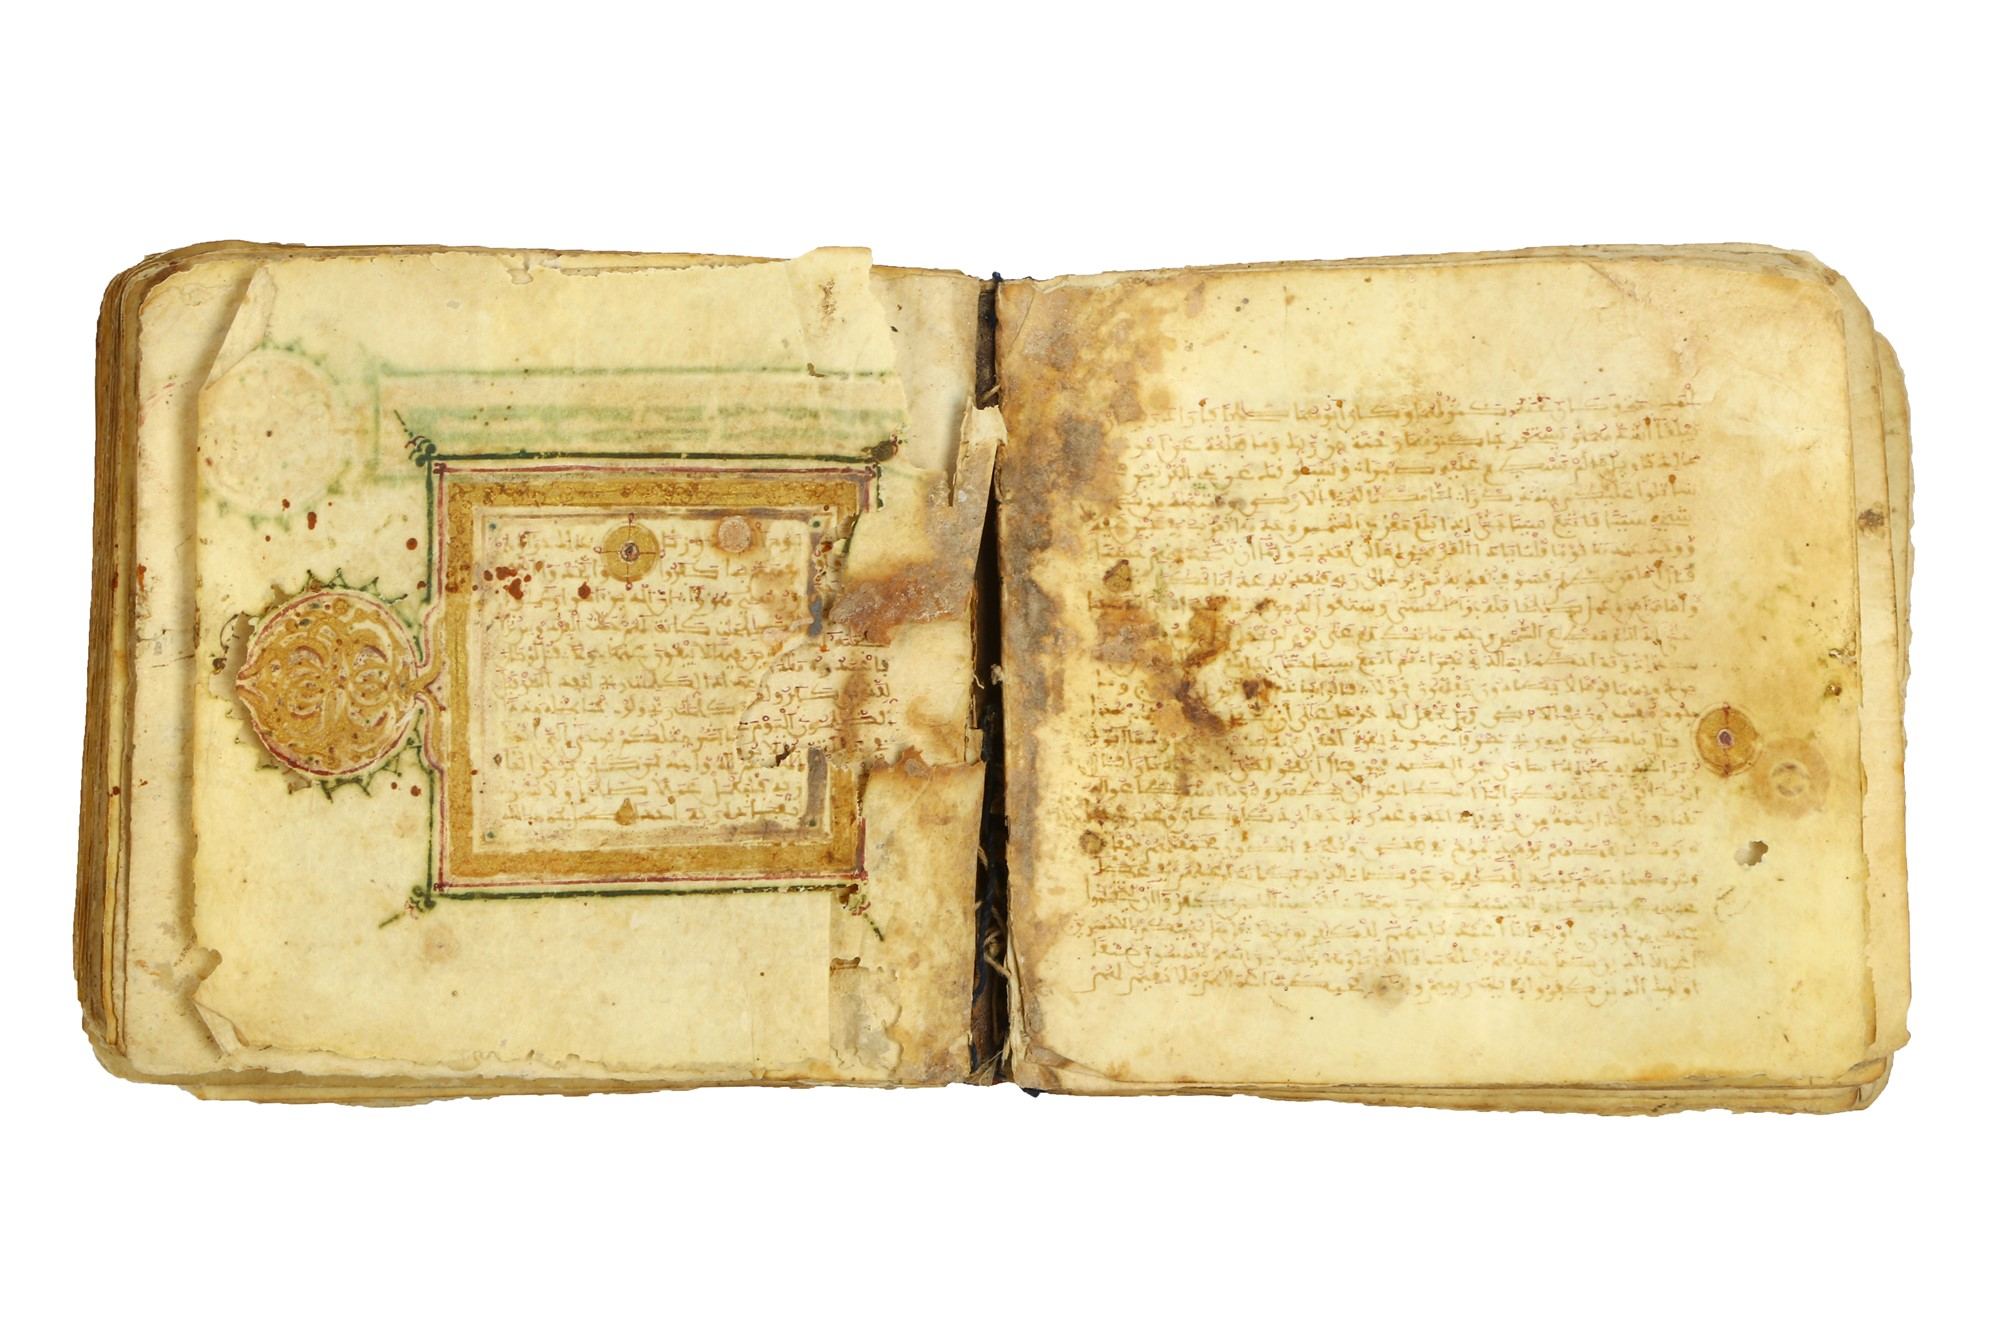 A Maghribi Qur'an, North-West Africa, 12th - 14th century